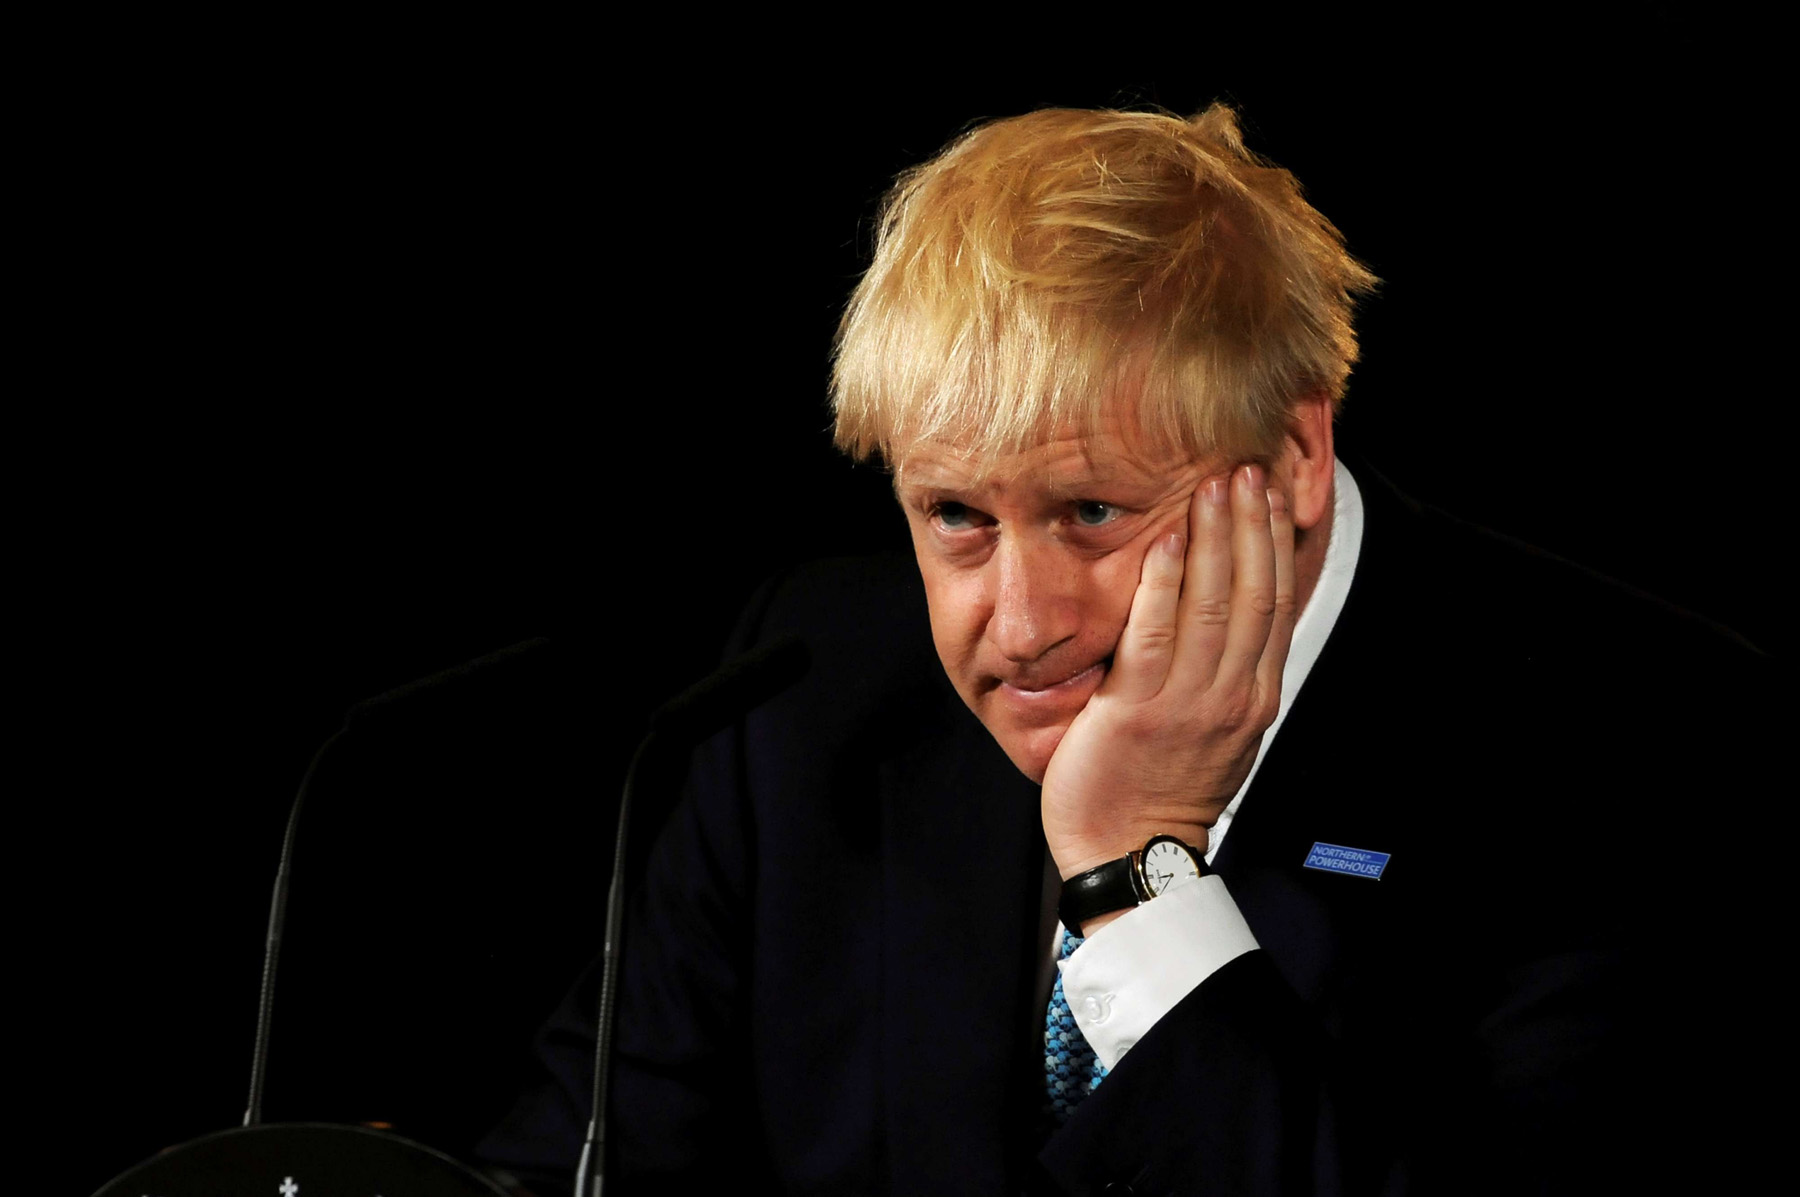 Britain's Prime Minister Boris Johnson reacts during a speech on domestic priorities at the Science and Industry Museum in Manchester, Britain July 27, 2019. (Reuters)